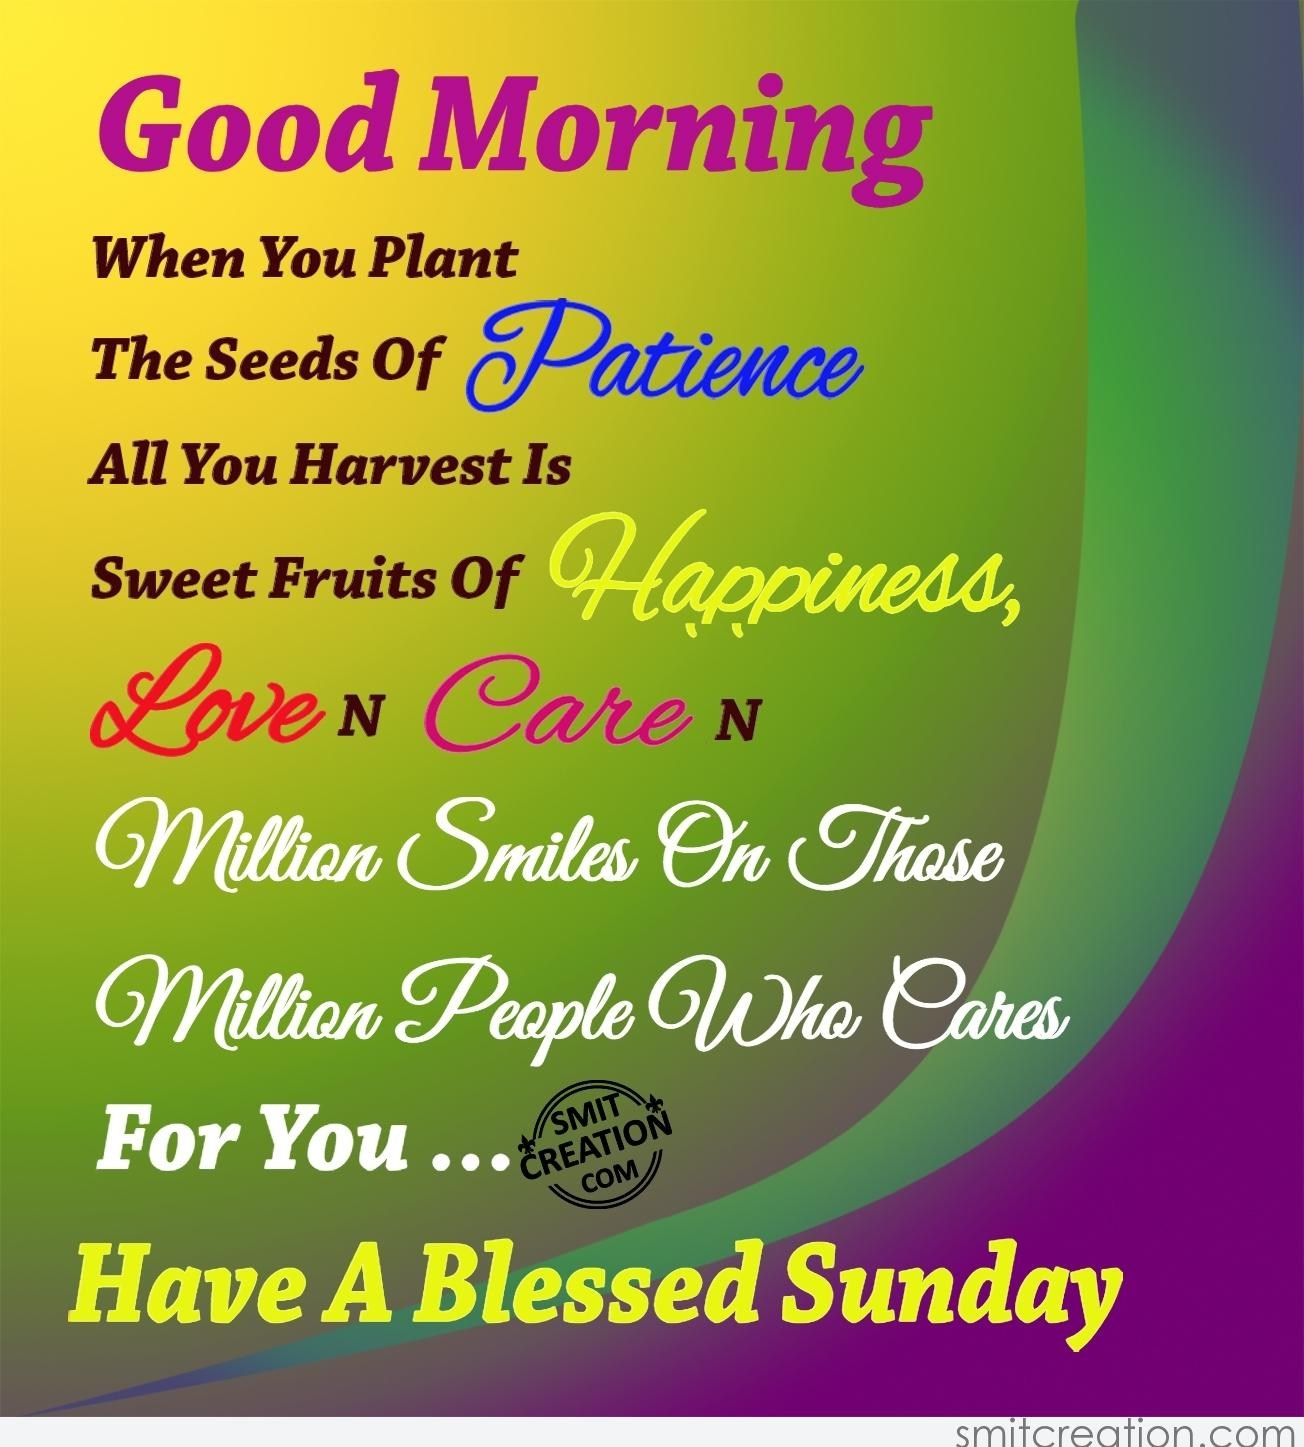 Good Morning Sunday Quotation : Image gallery have a blessed sunday